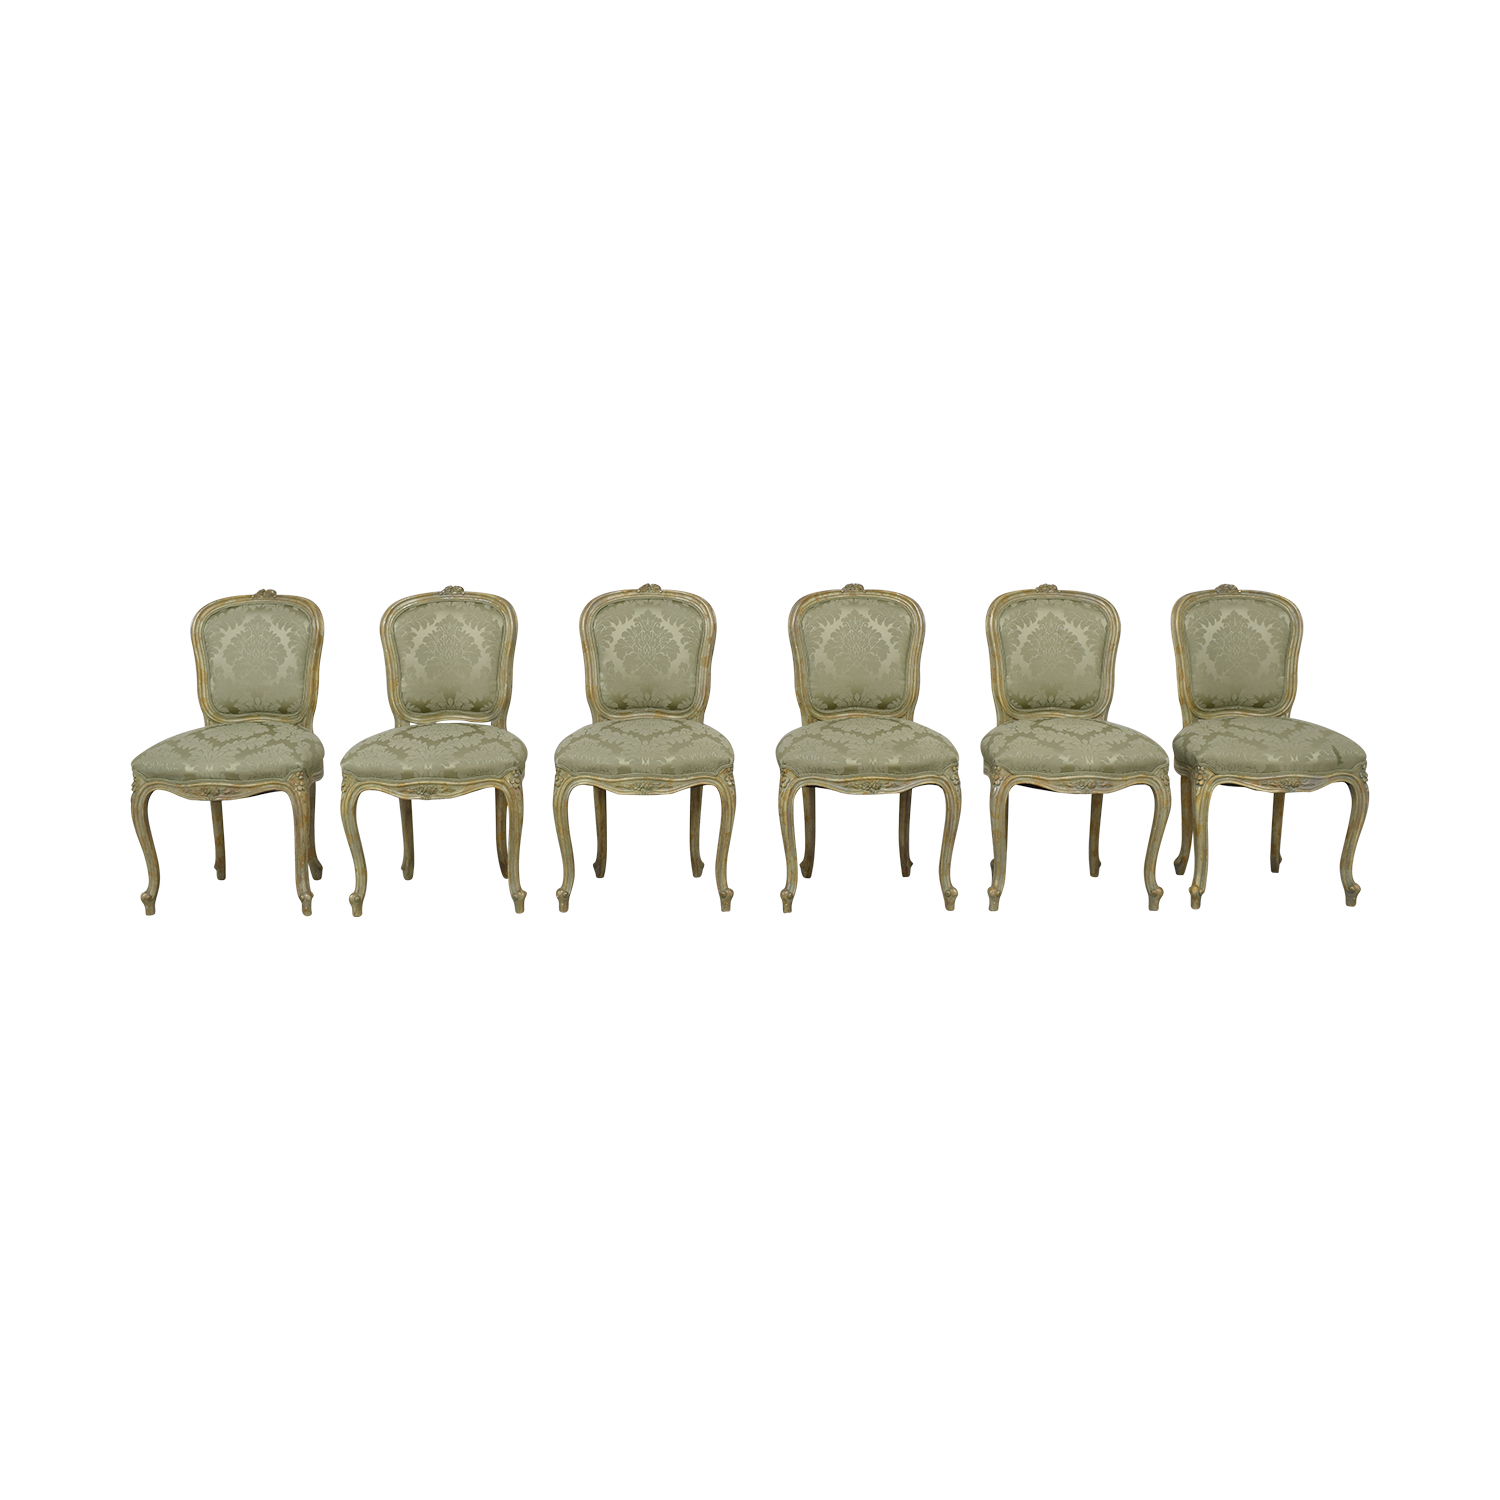 Damask Dining Chair 90 Off Devon Shops Devon Shop French Celery Damask Upholstered Dining Chairs Chairs